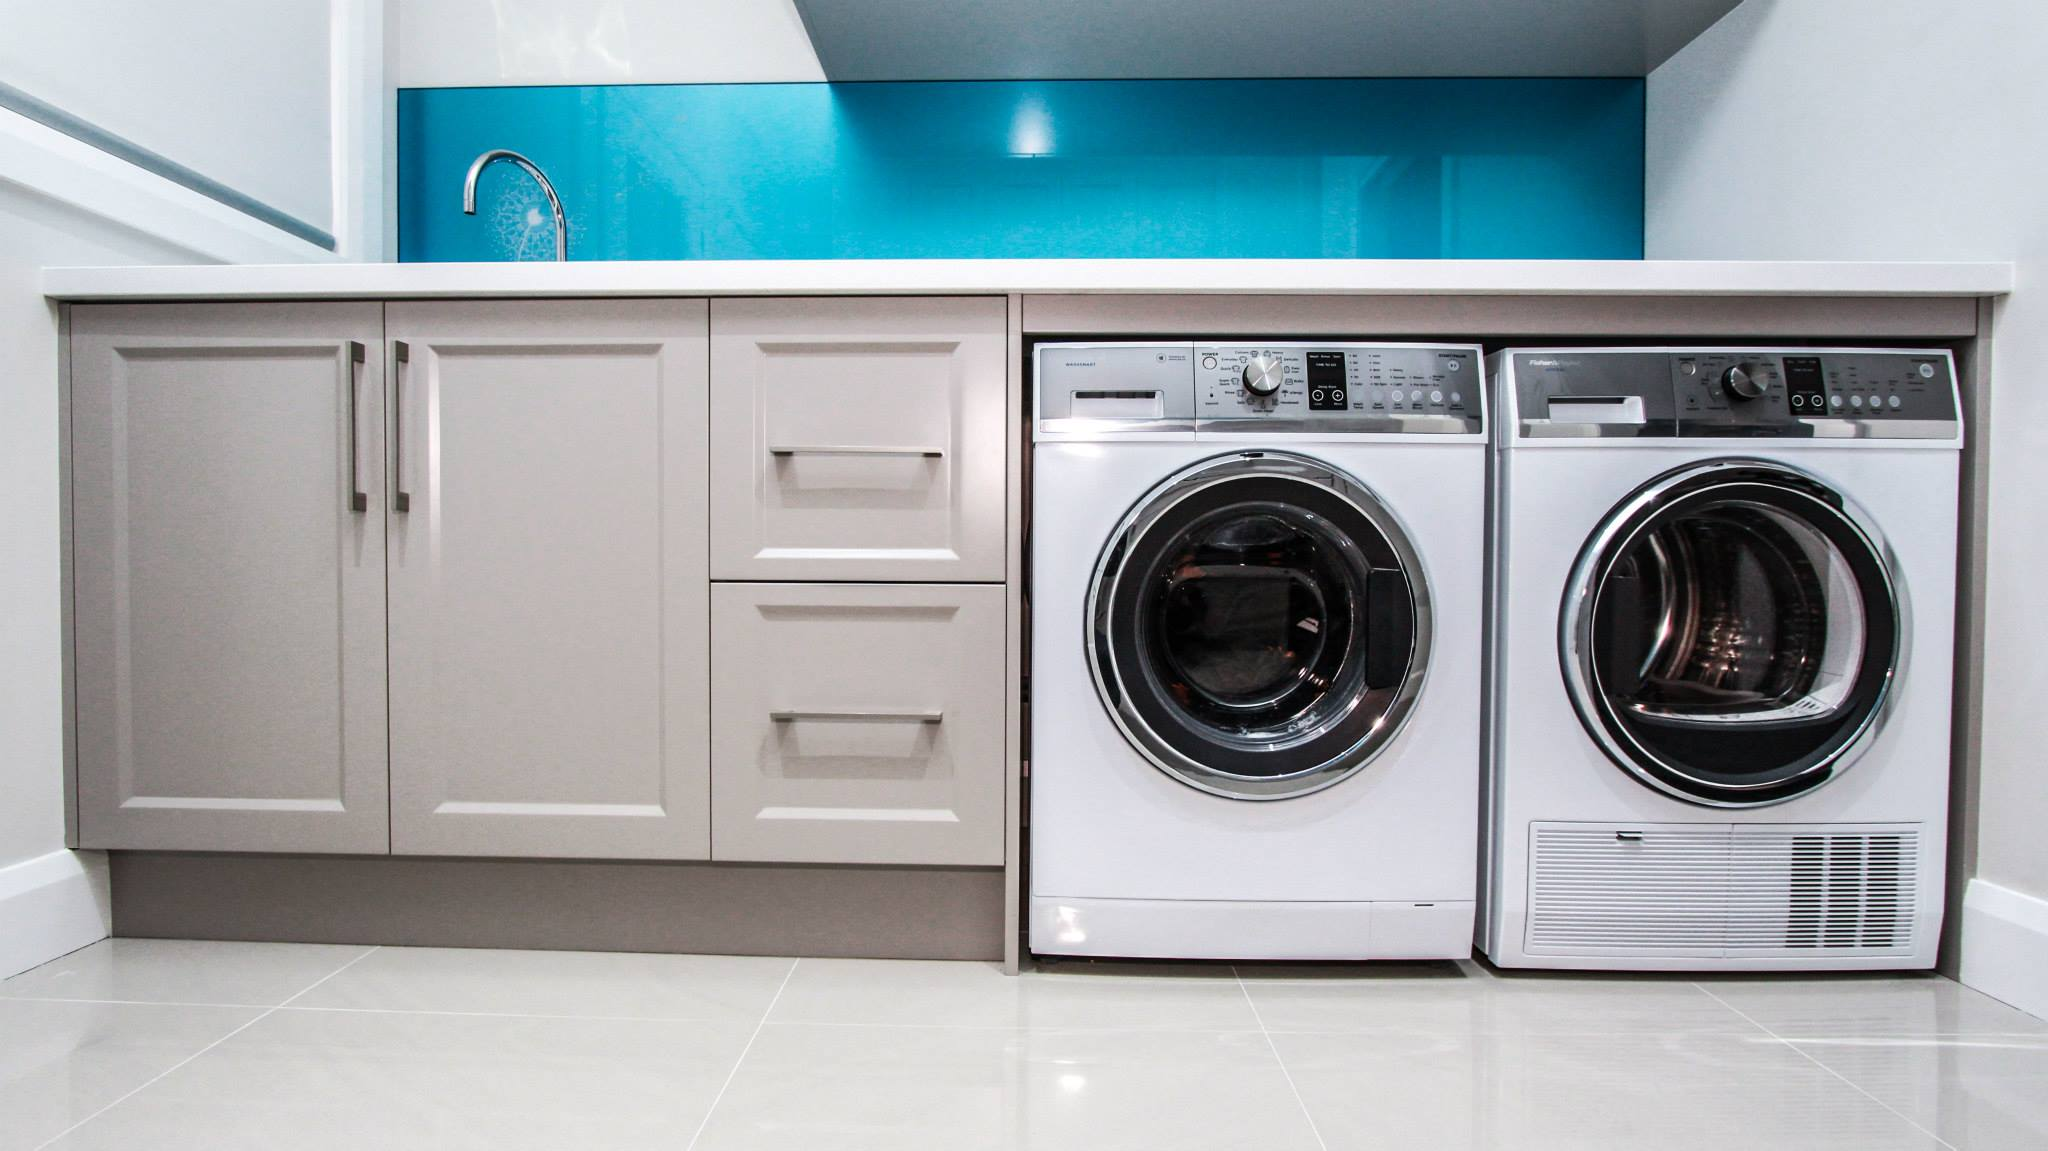 Laundry j d custom cabinetry we design and build laundry cabinets to suit your style and needs whether you need new cabinets for your existing laundry or a new fit out we can create a solutioingenieria Image collections